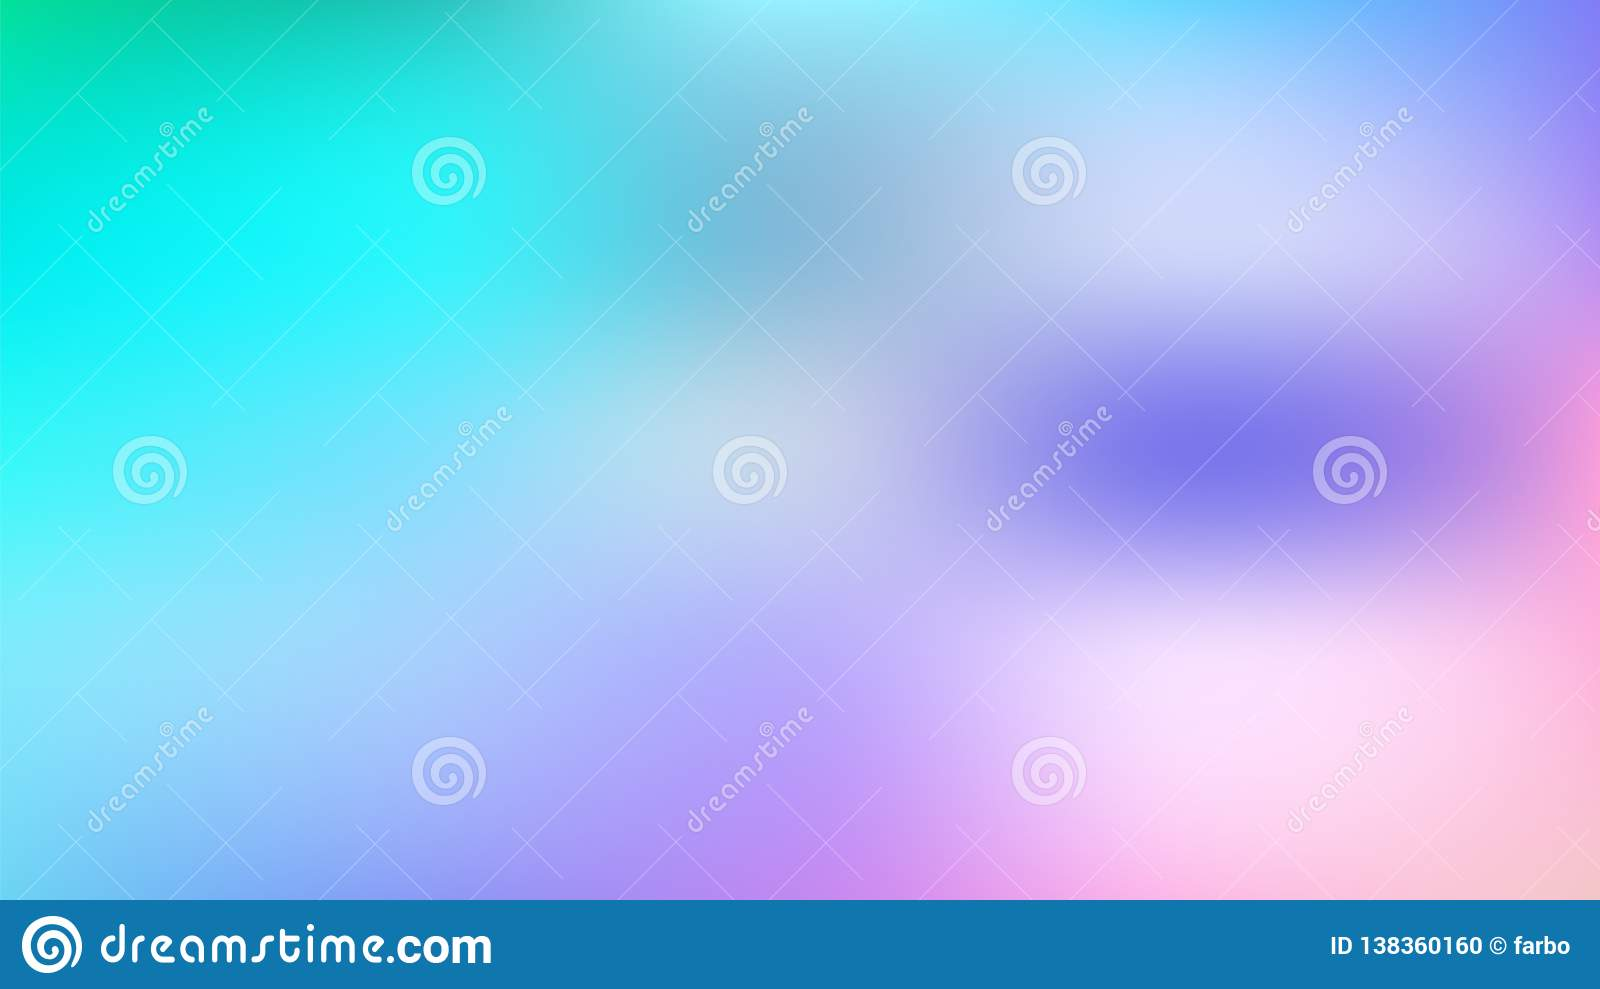 Abstract Blue Violet Pink Gradient Background Stock Vector